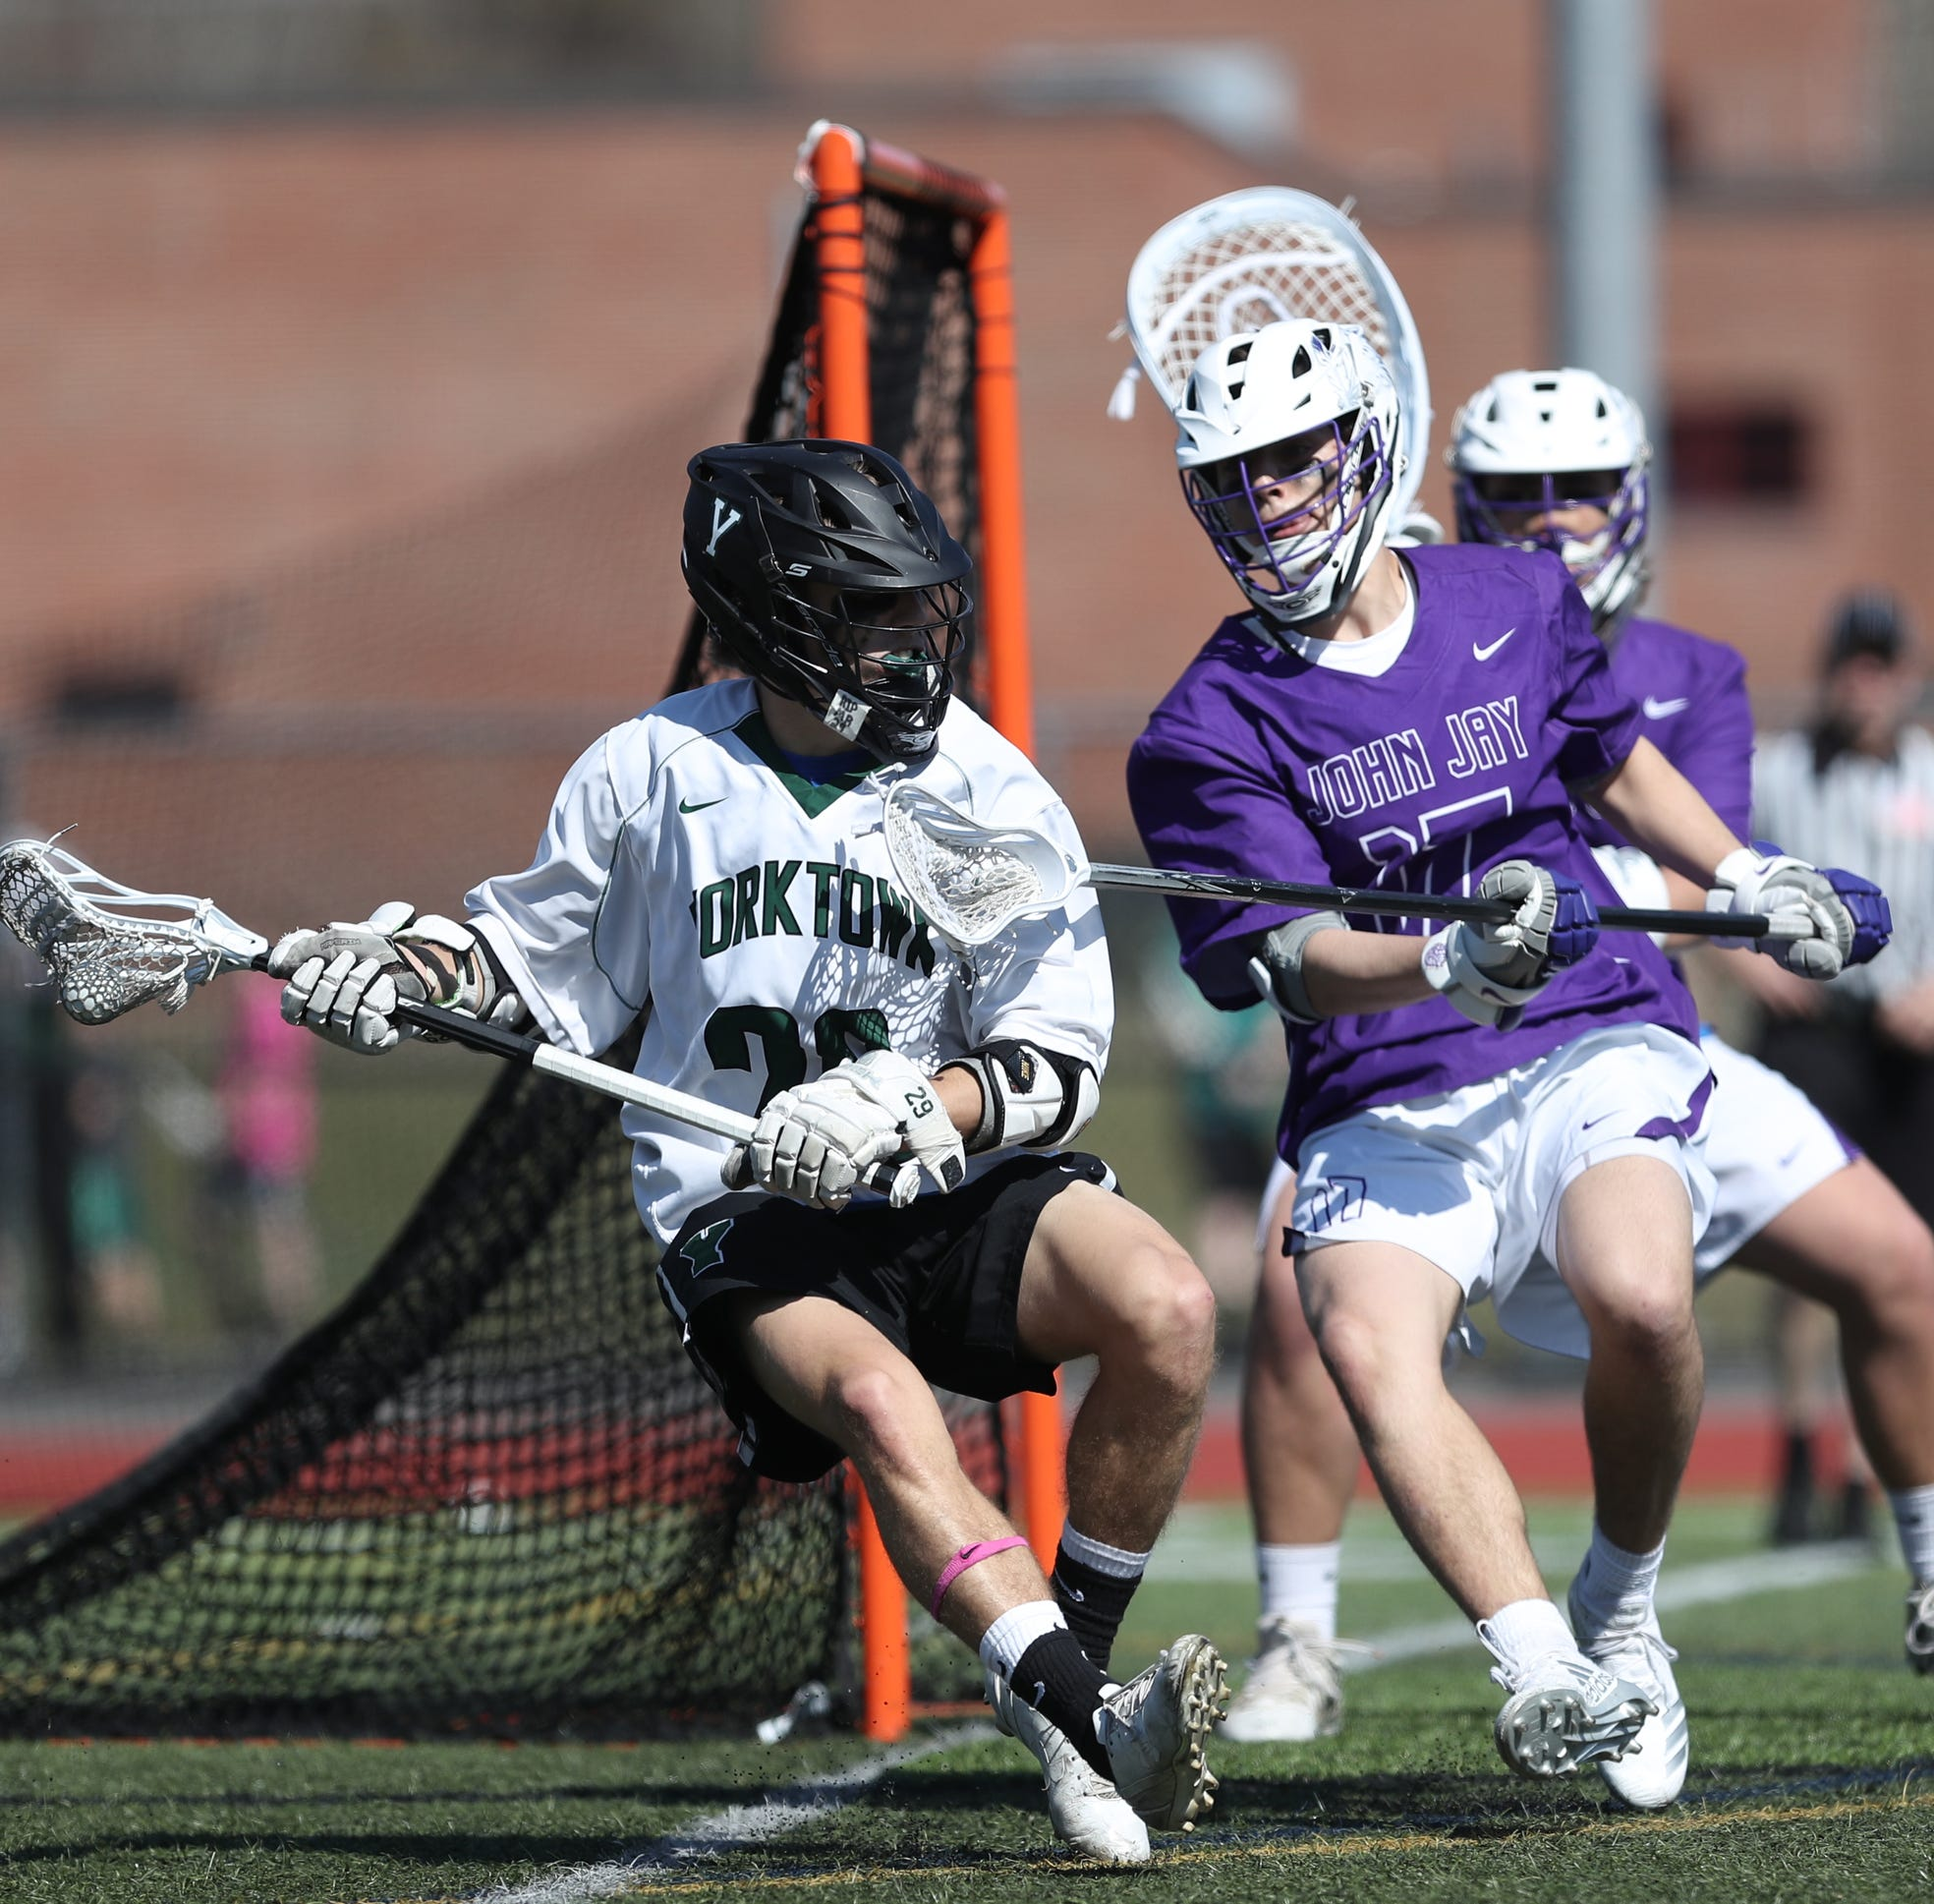 Boys lacrosse: Yorktown gets a little redemption with an easy win over John Jay